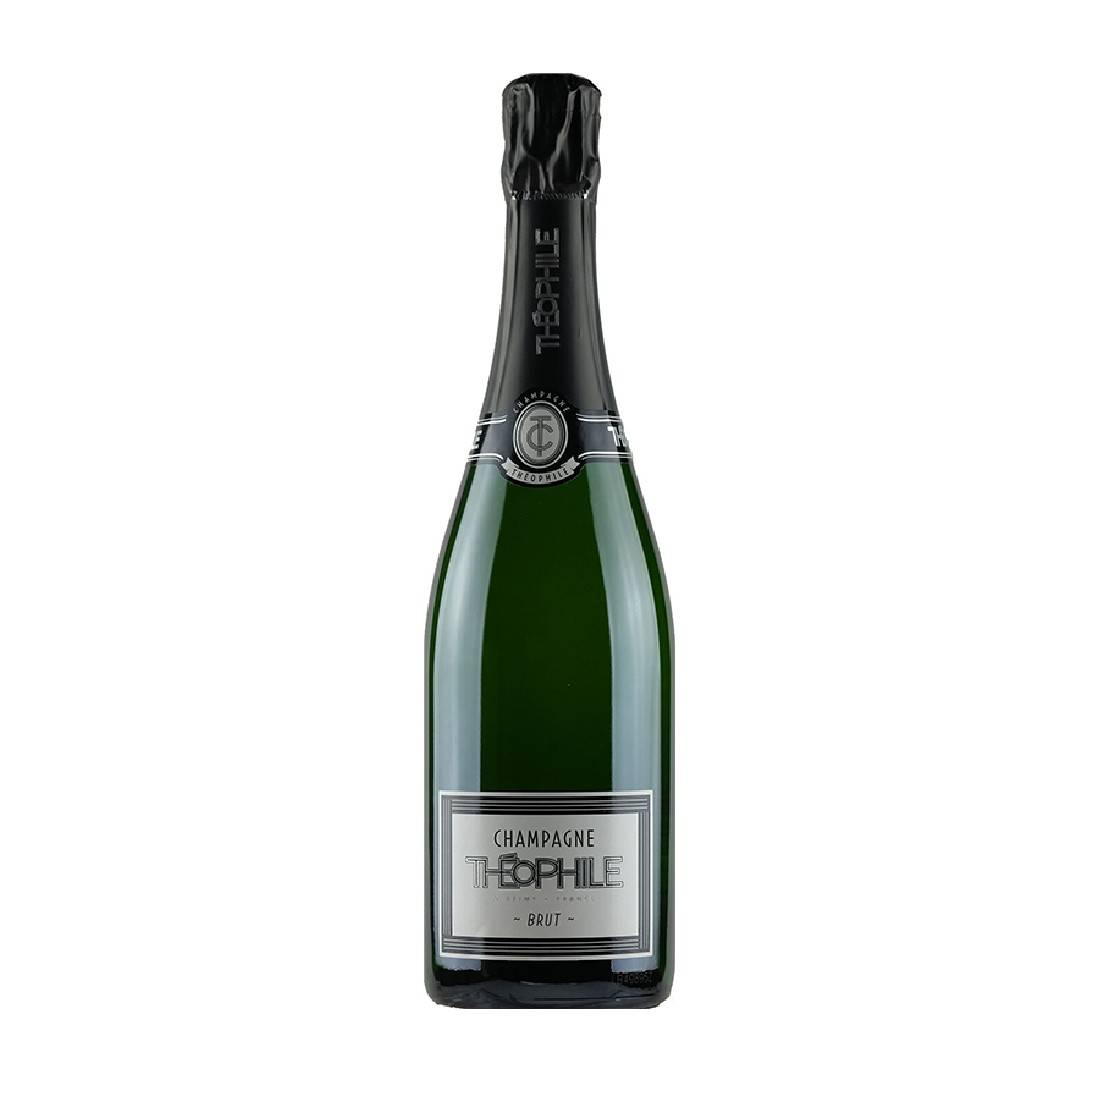 Louis Roederer Champagne Theophile Brut -